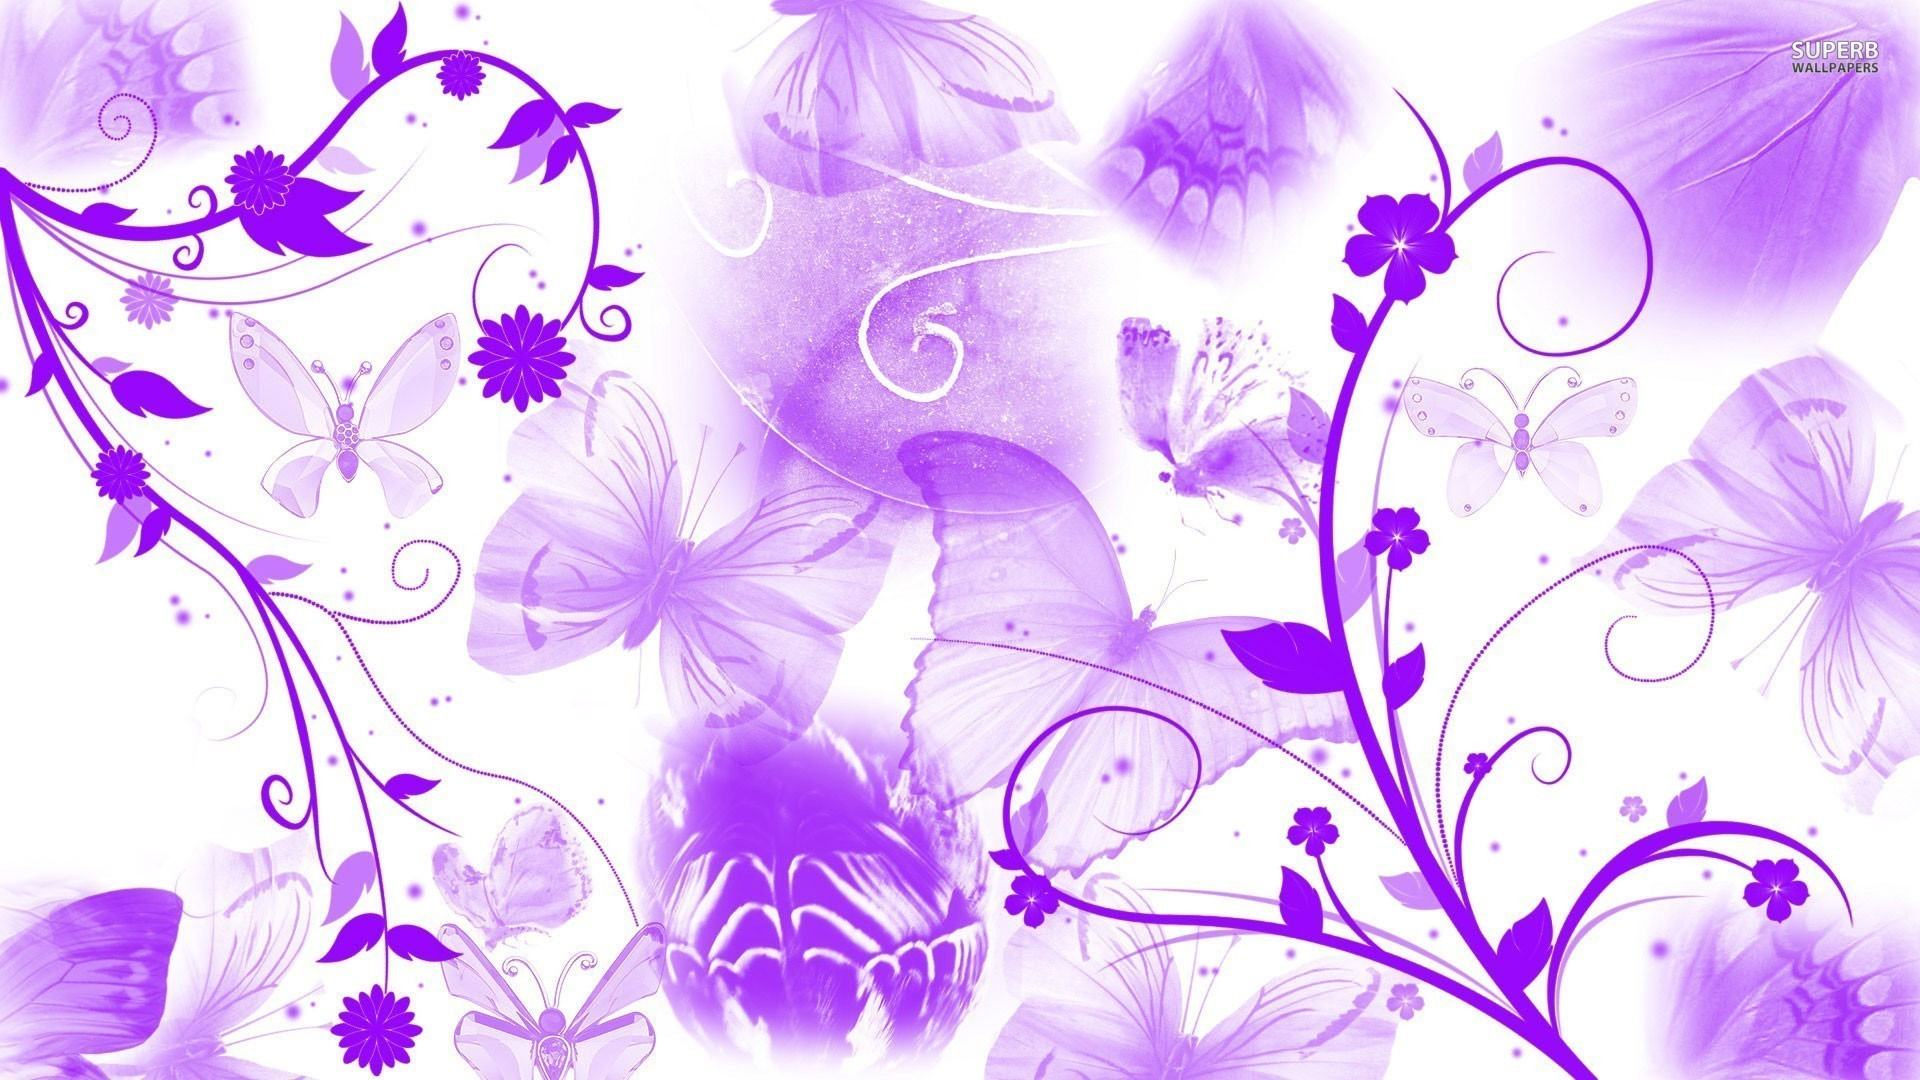 Good Wallpaper High Quality Butterfly - 630106-purple-butterfly-wallpaper-1920x1080-large-resolution  Best Photo Reference_53677.jpg